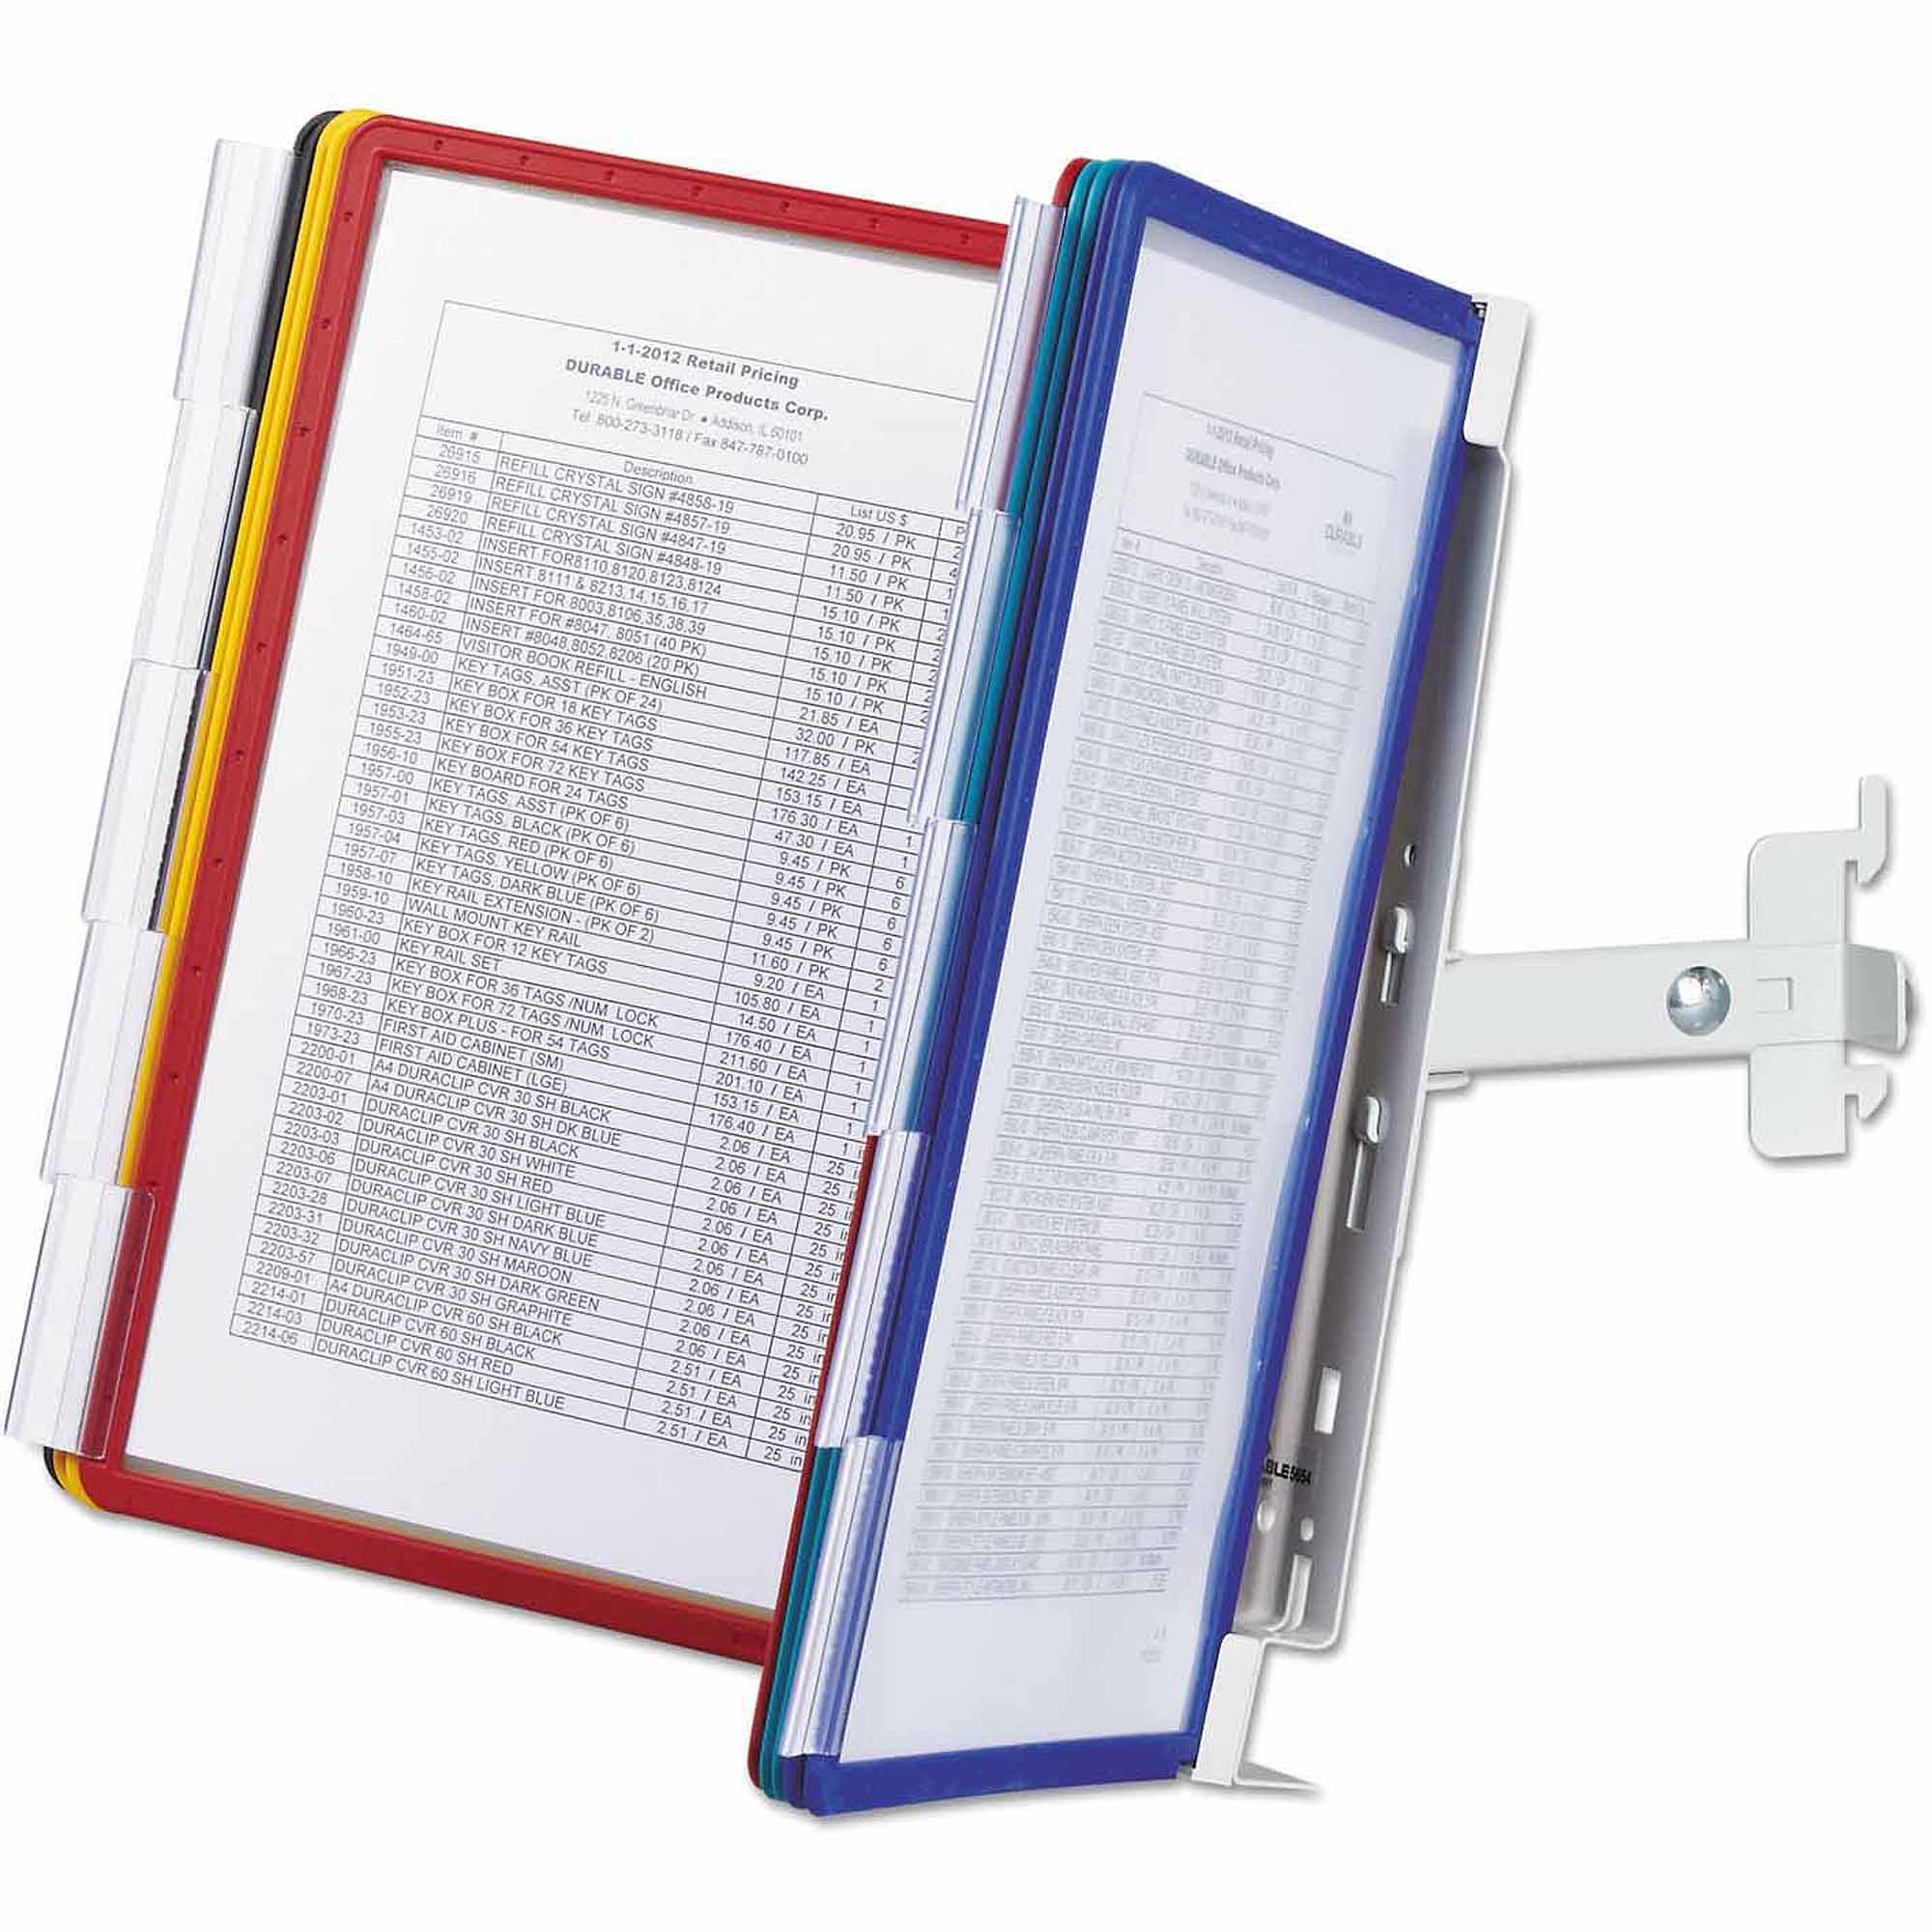 Durable SHERPA Panel Bracket Reference System, 10 Panels